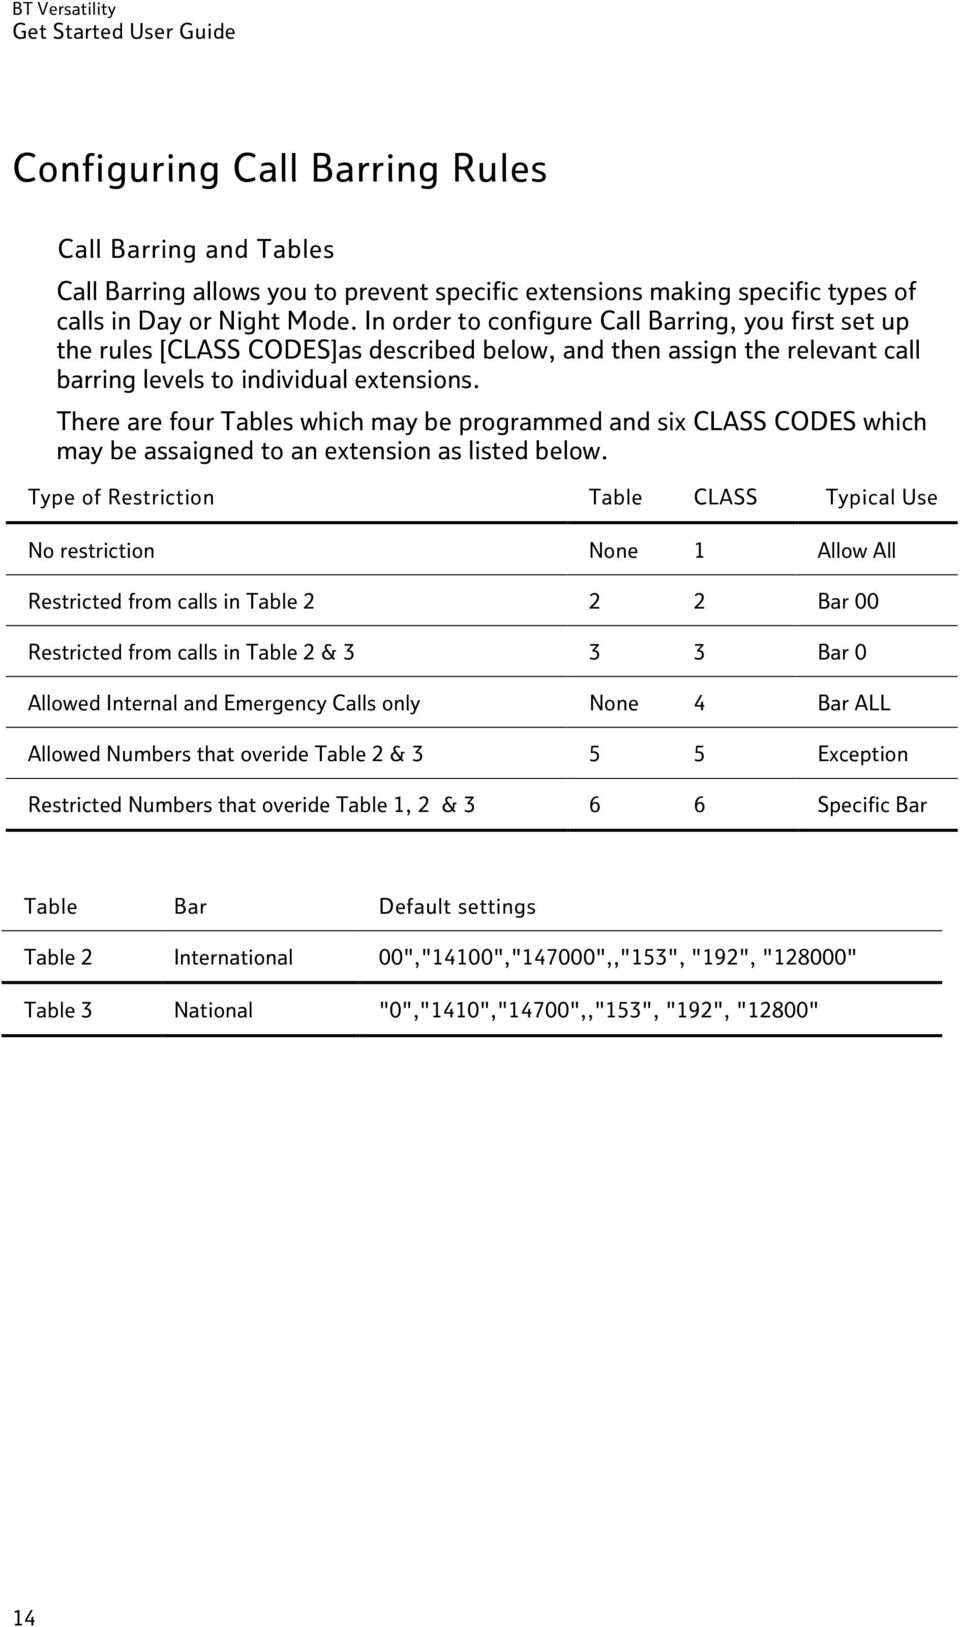 There are four Tables which may be programmed and six CLASS CODES which may be assaigned to an extension as listed below.